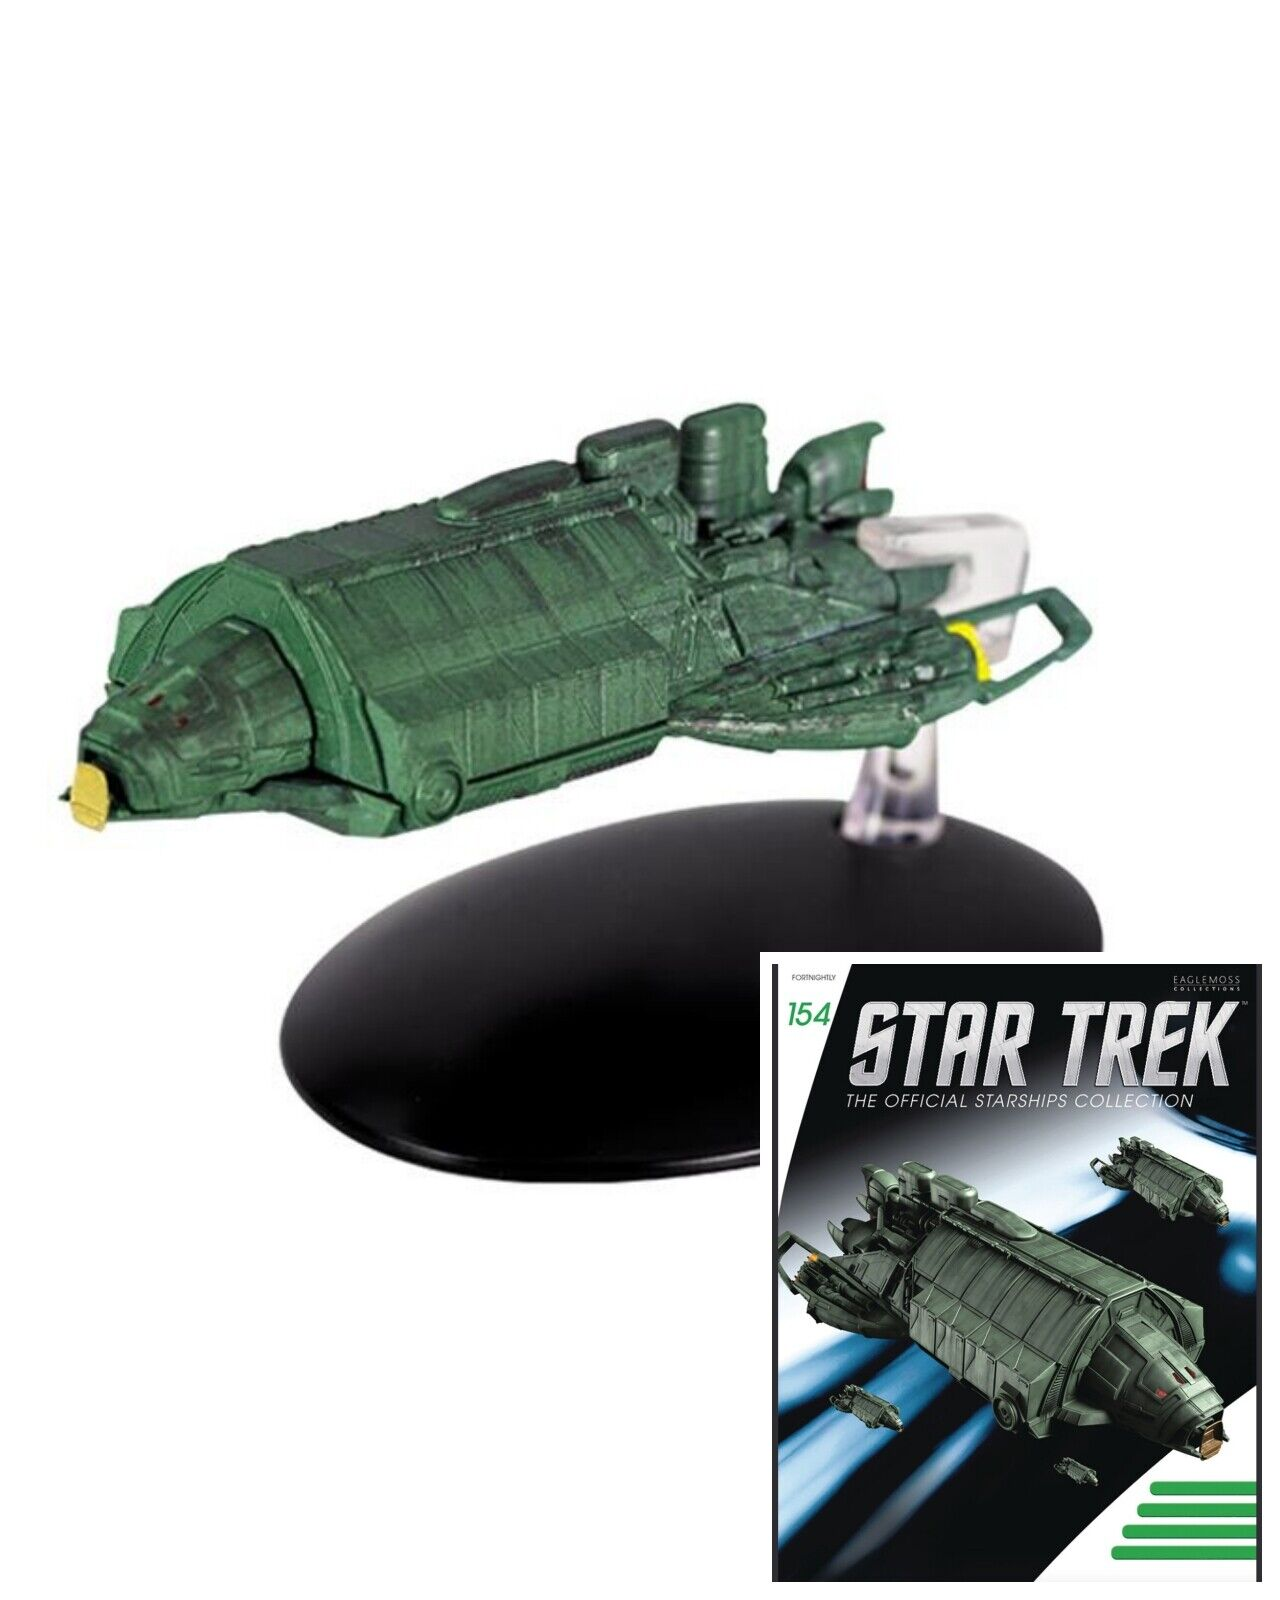 Issue 154: Klingon Transport Starship